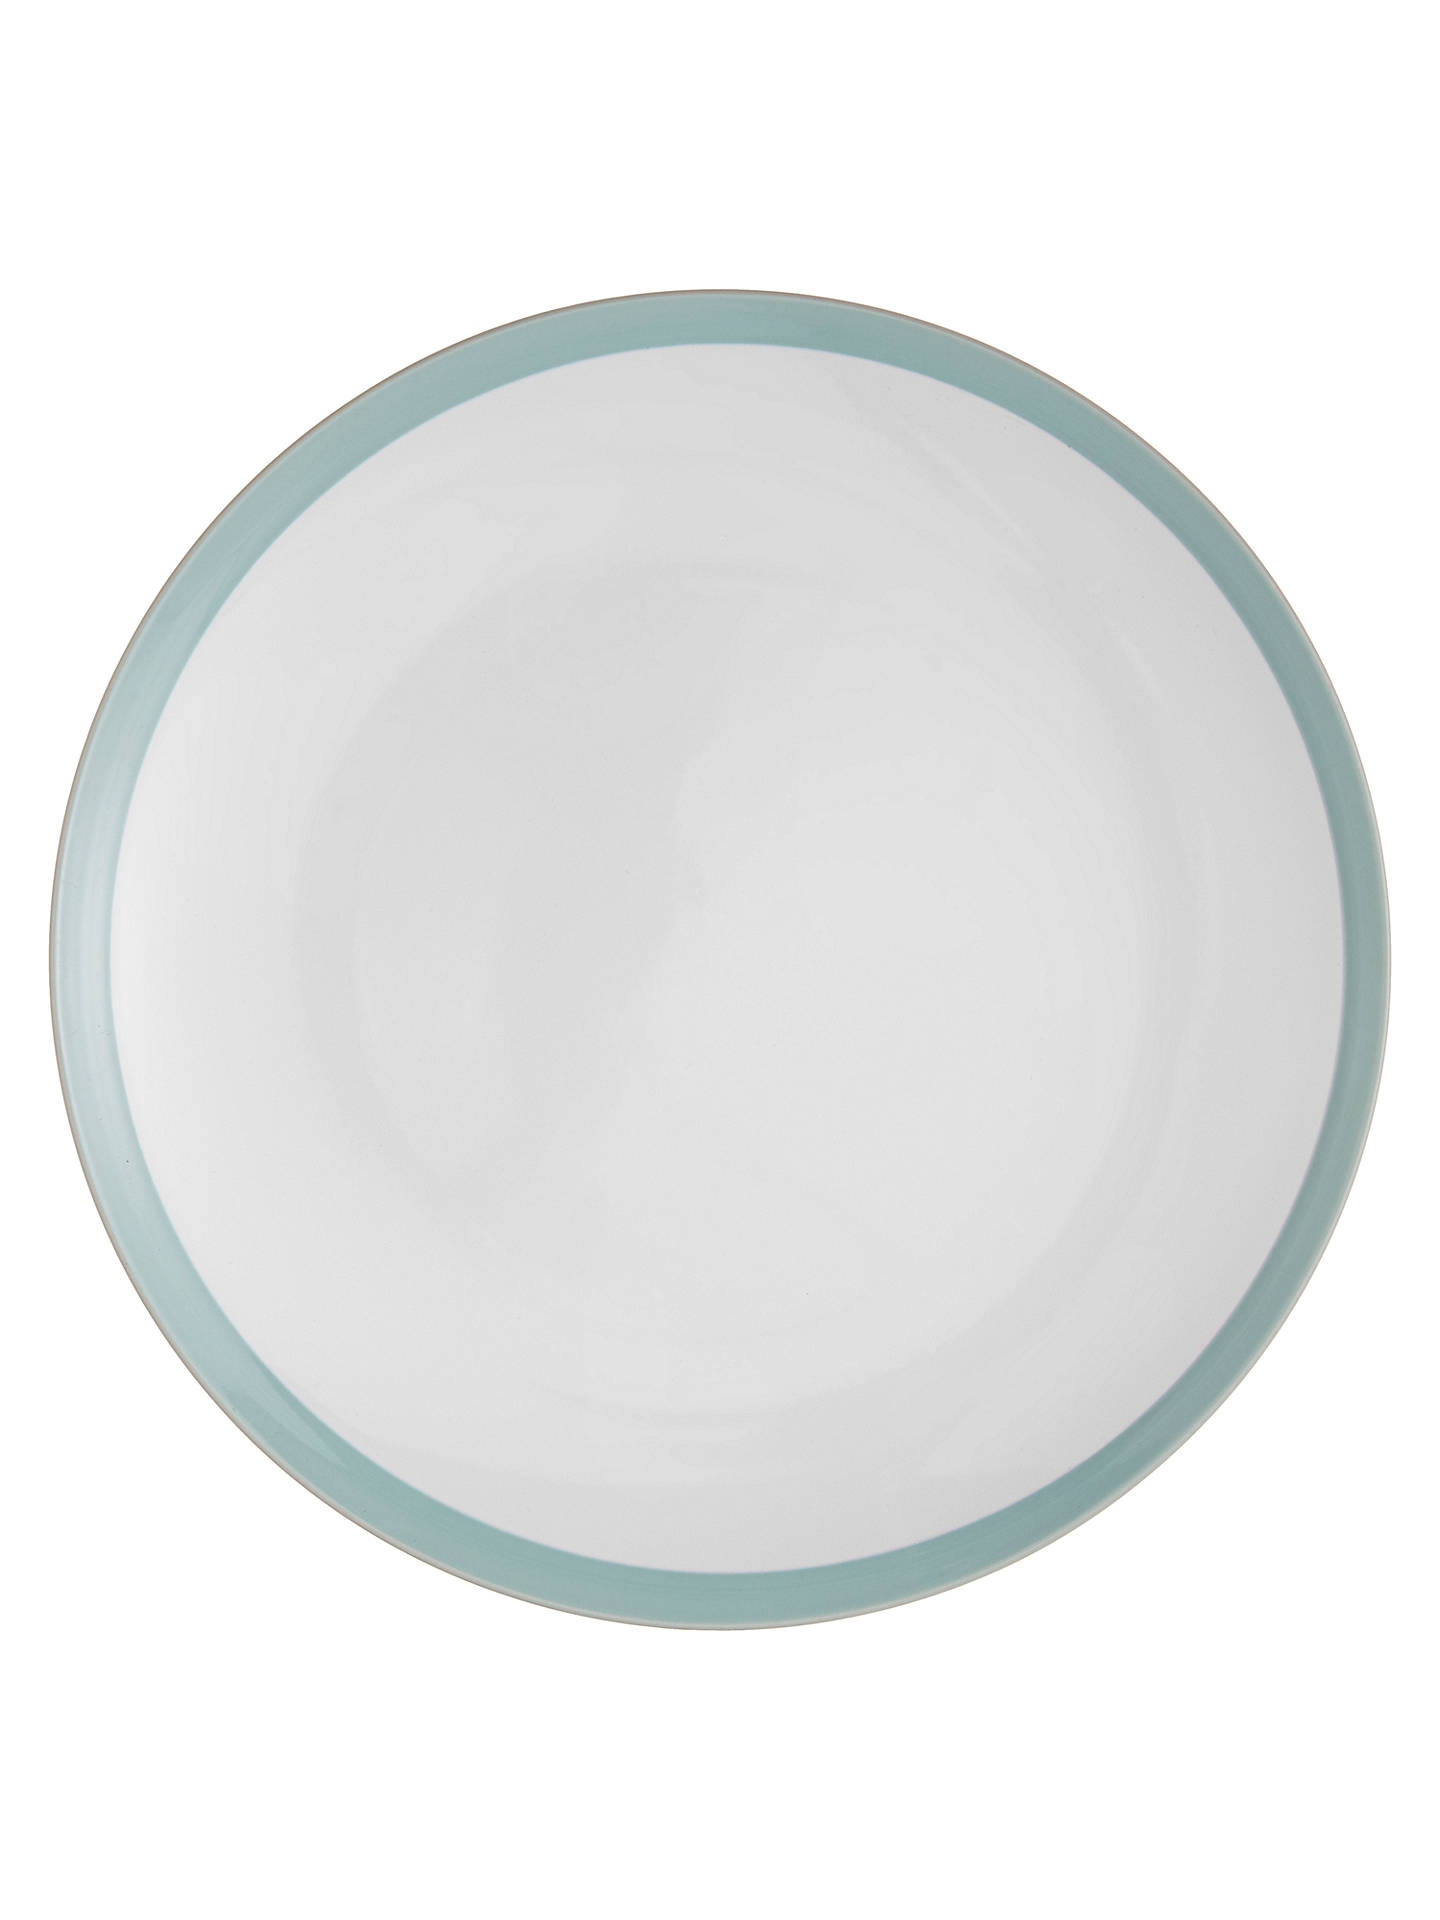 BuyJohn Lewis & Partners The Basics Dinnerware Set, 12 Piece, Mineral Online at johnlewis.com